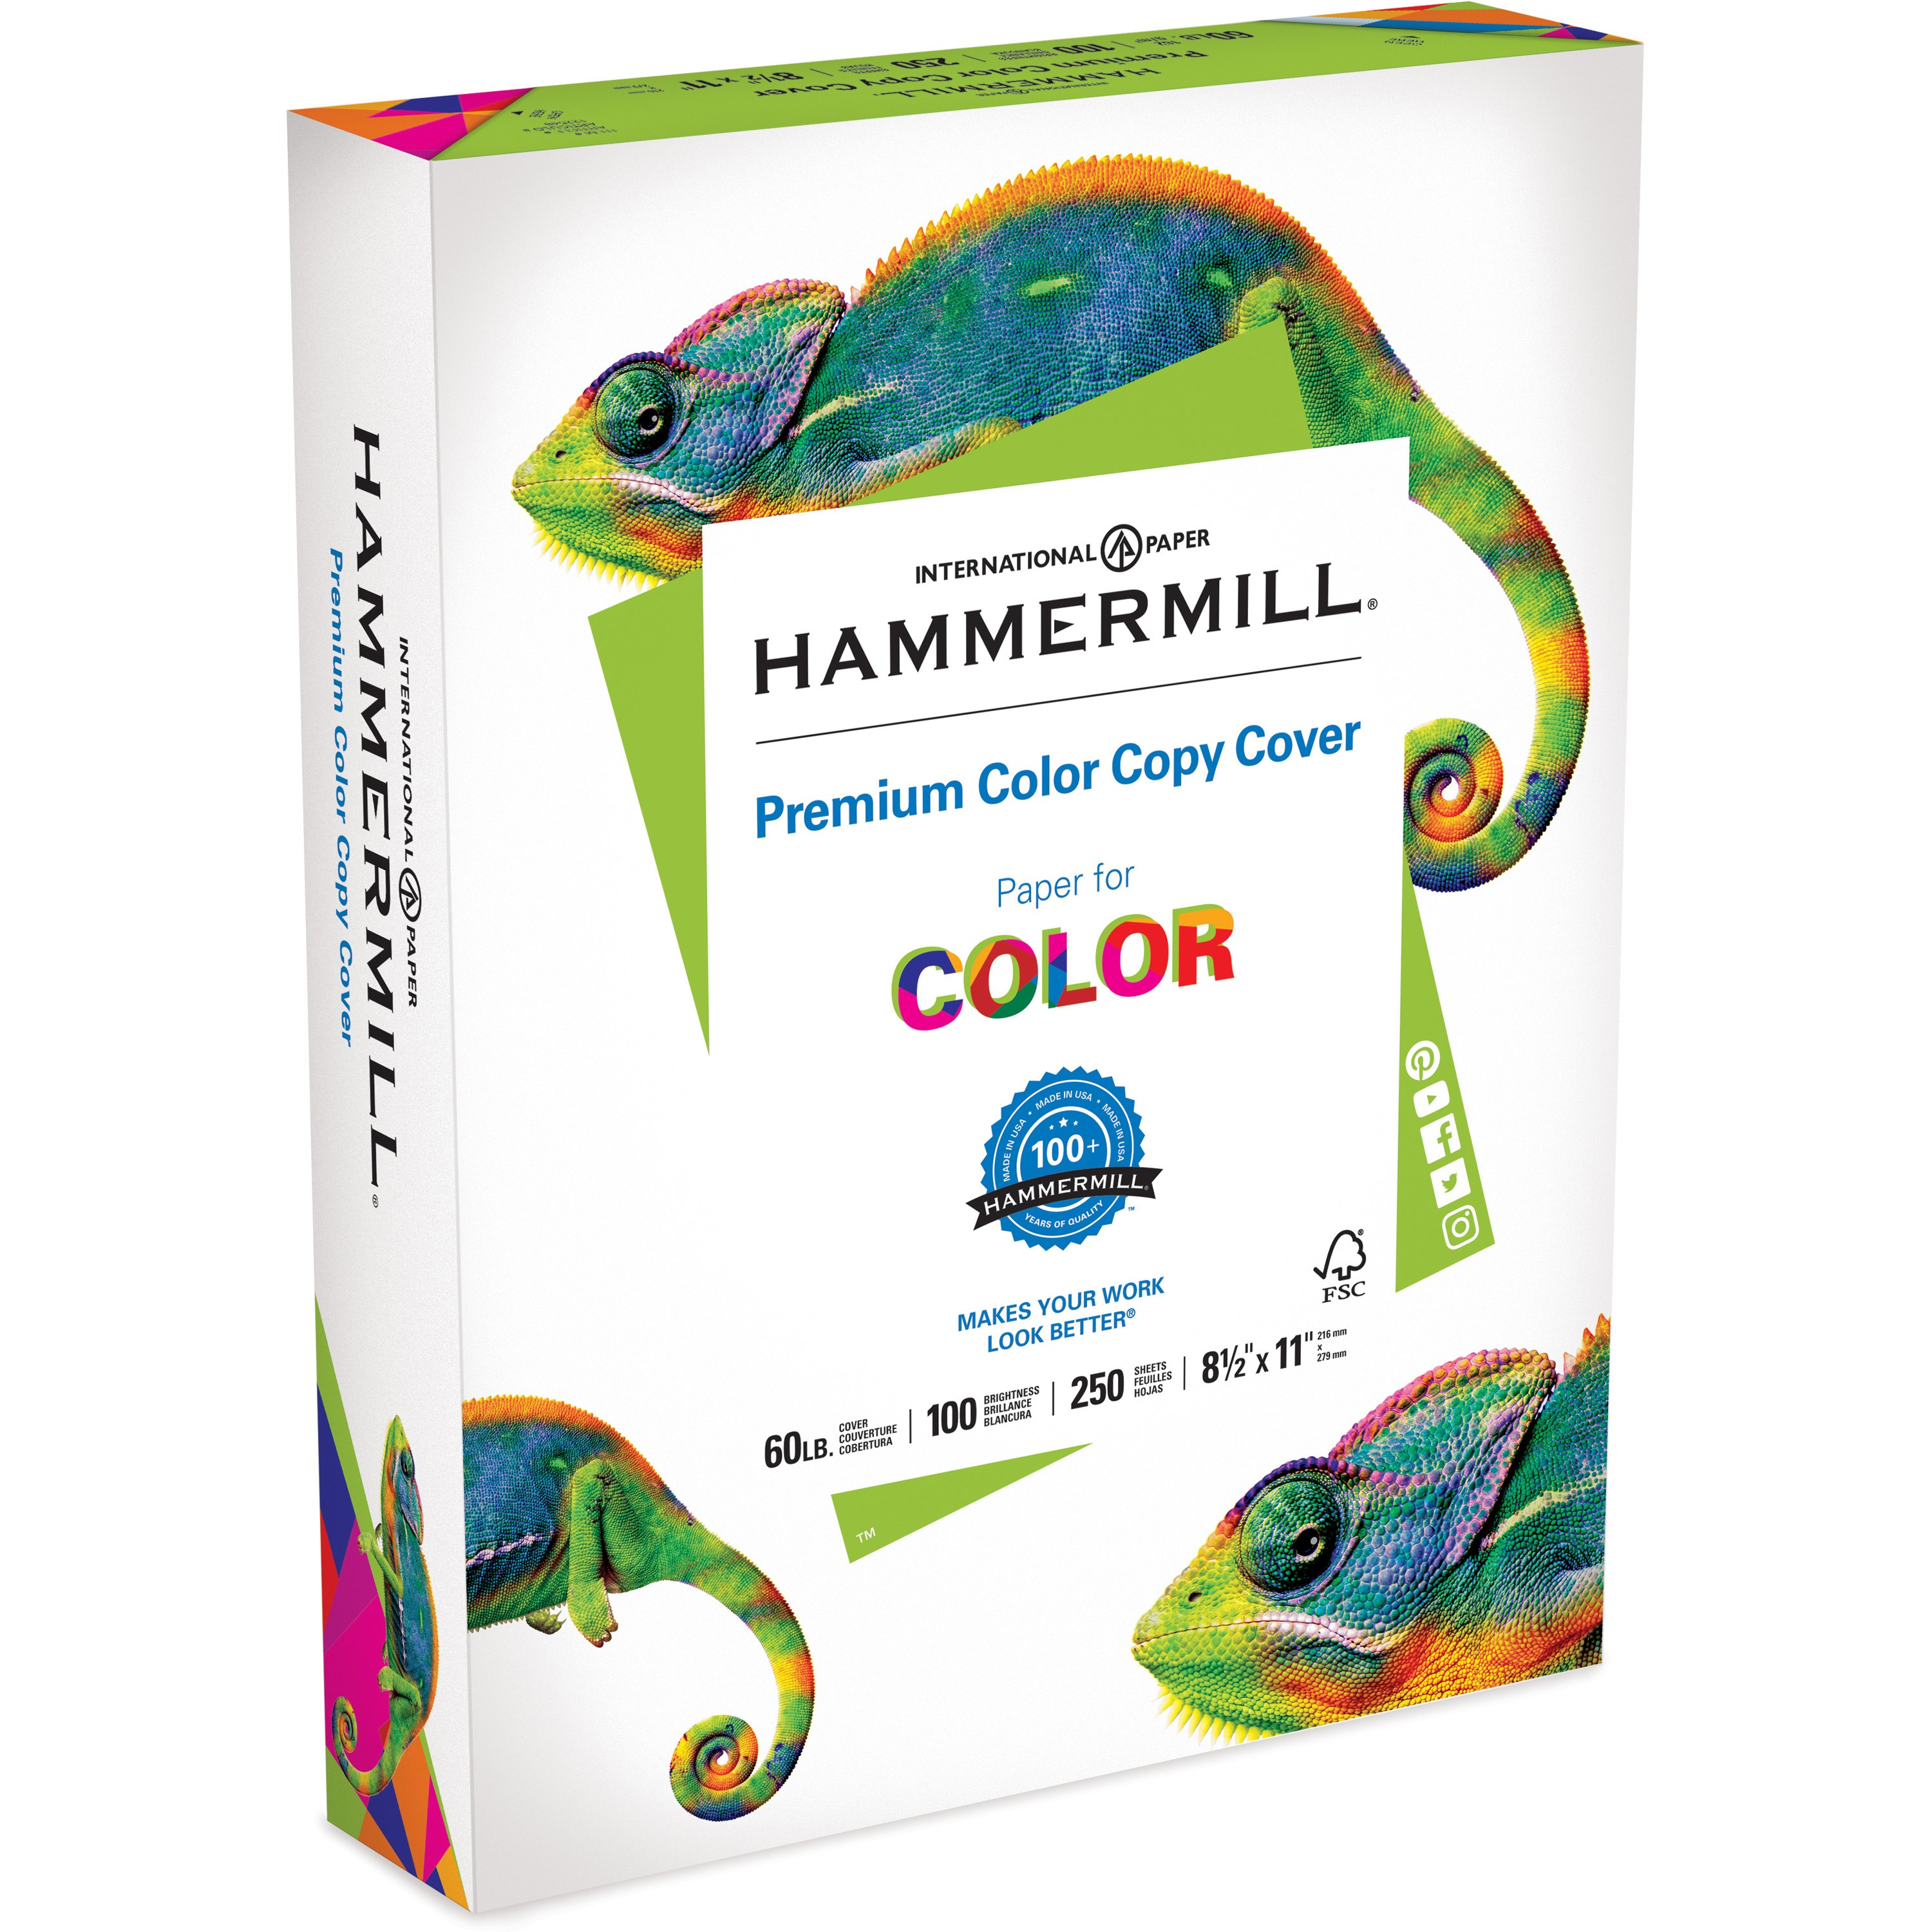 Hammermill Color Copy Cover Paper, White, 250 / Pack (Quantity)